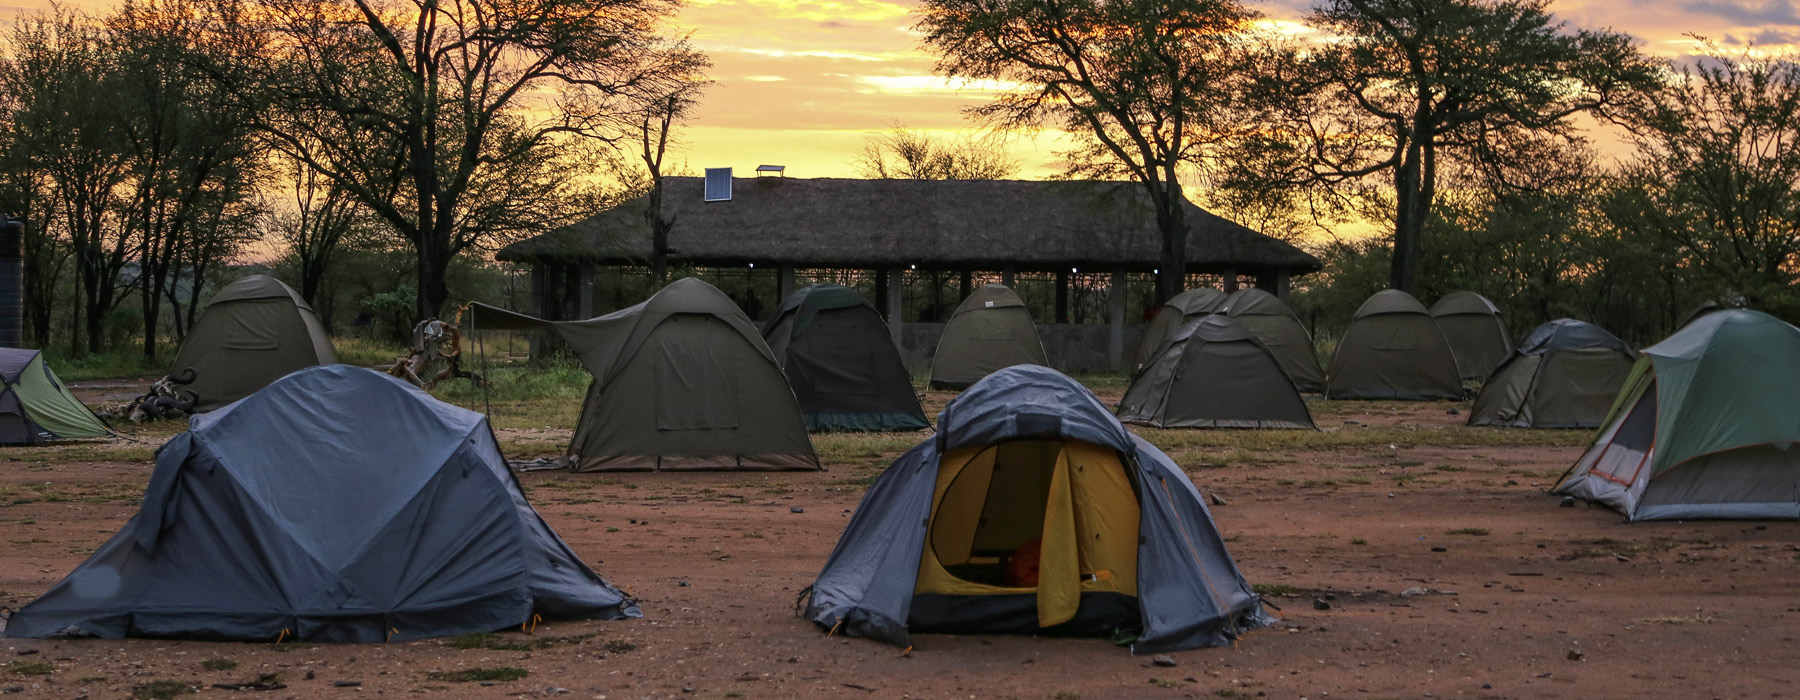 2 Days Tanzania Camping Safari